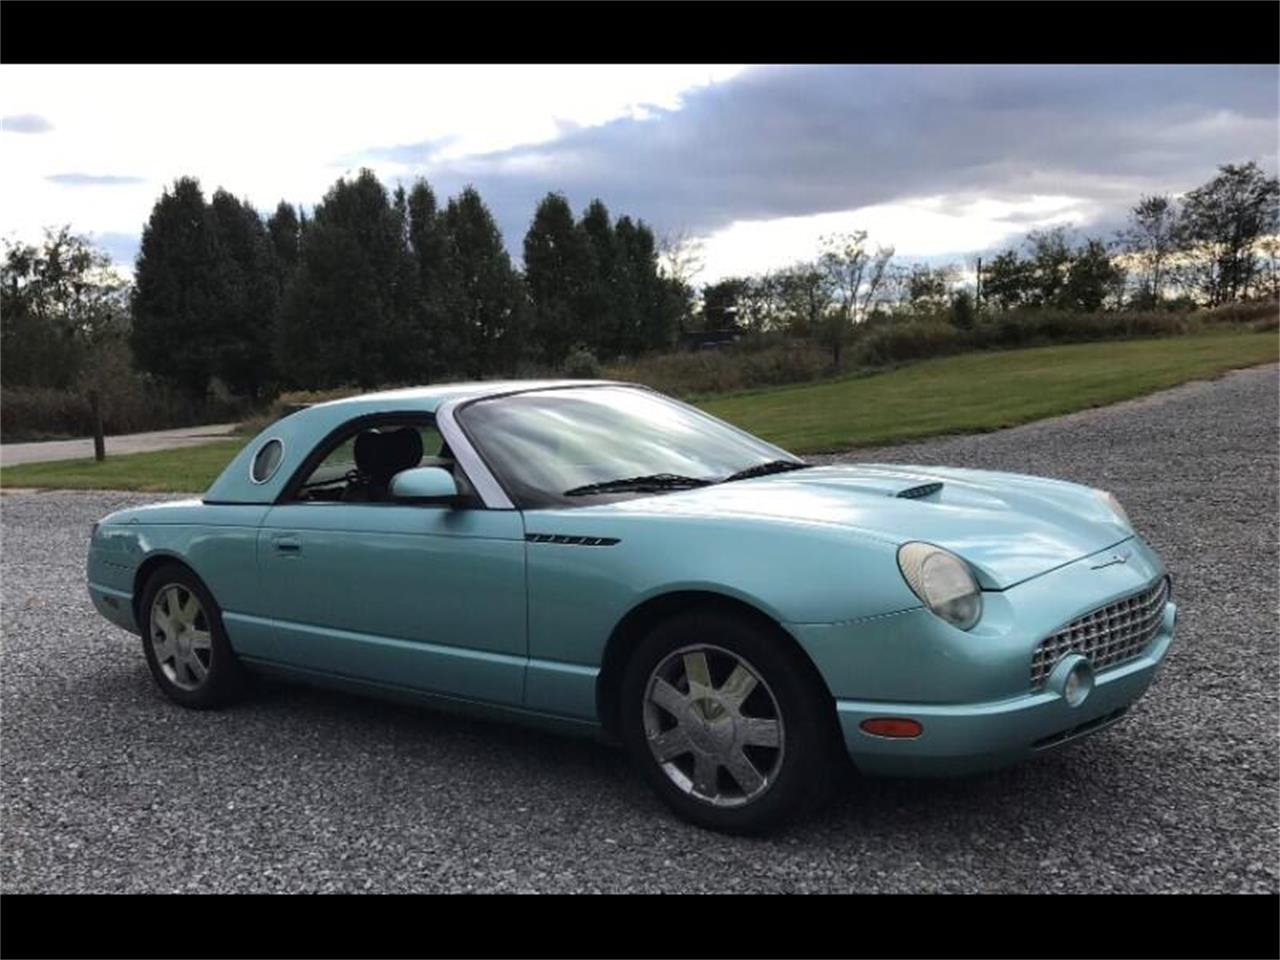 2002 Ford Thunderbird (CC-1415896) for sale in Harpers Ferry, West Virginia